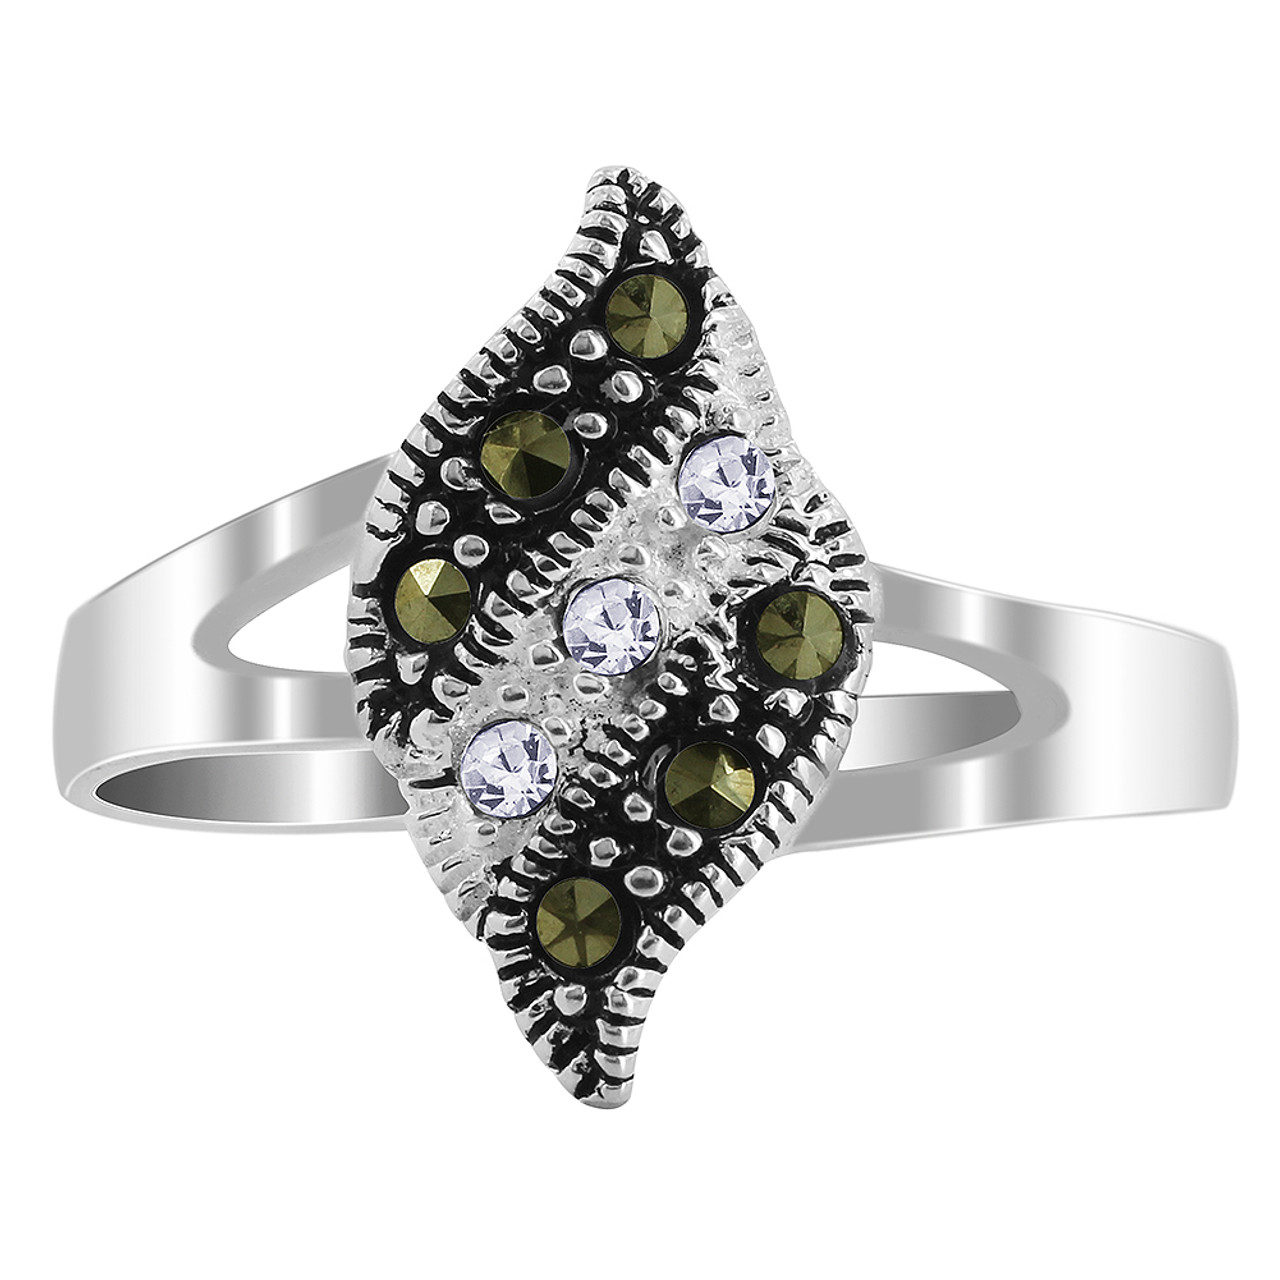 Clear Cubic Zirconia and Marcasite Ring